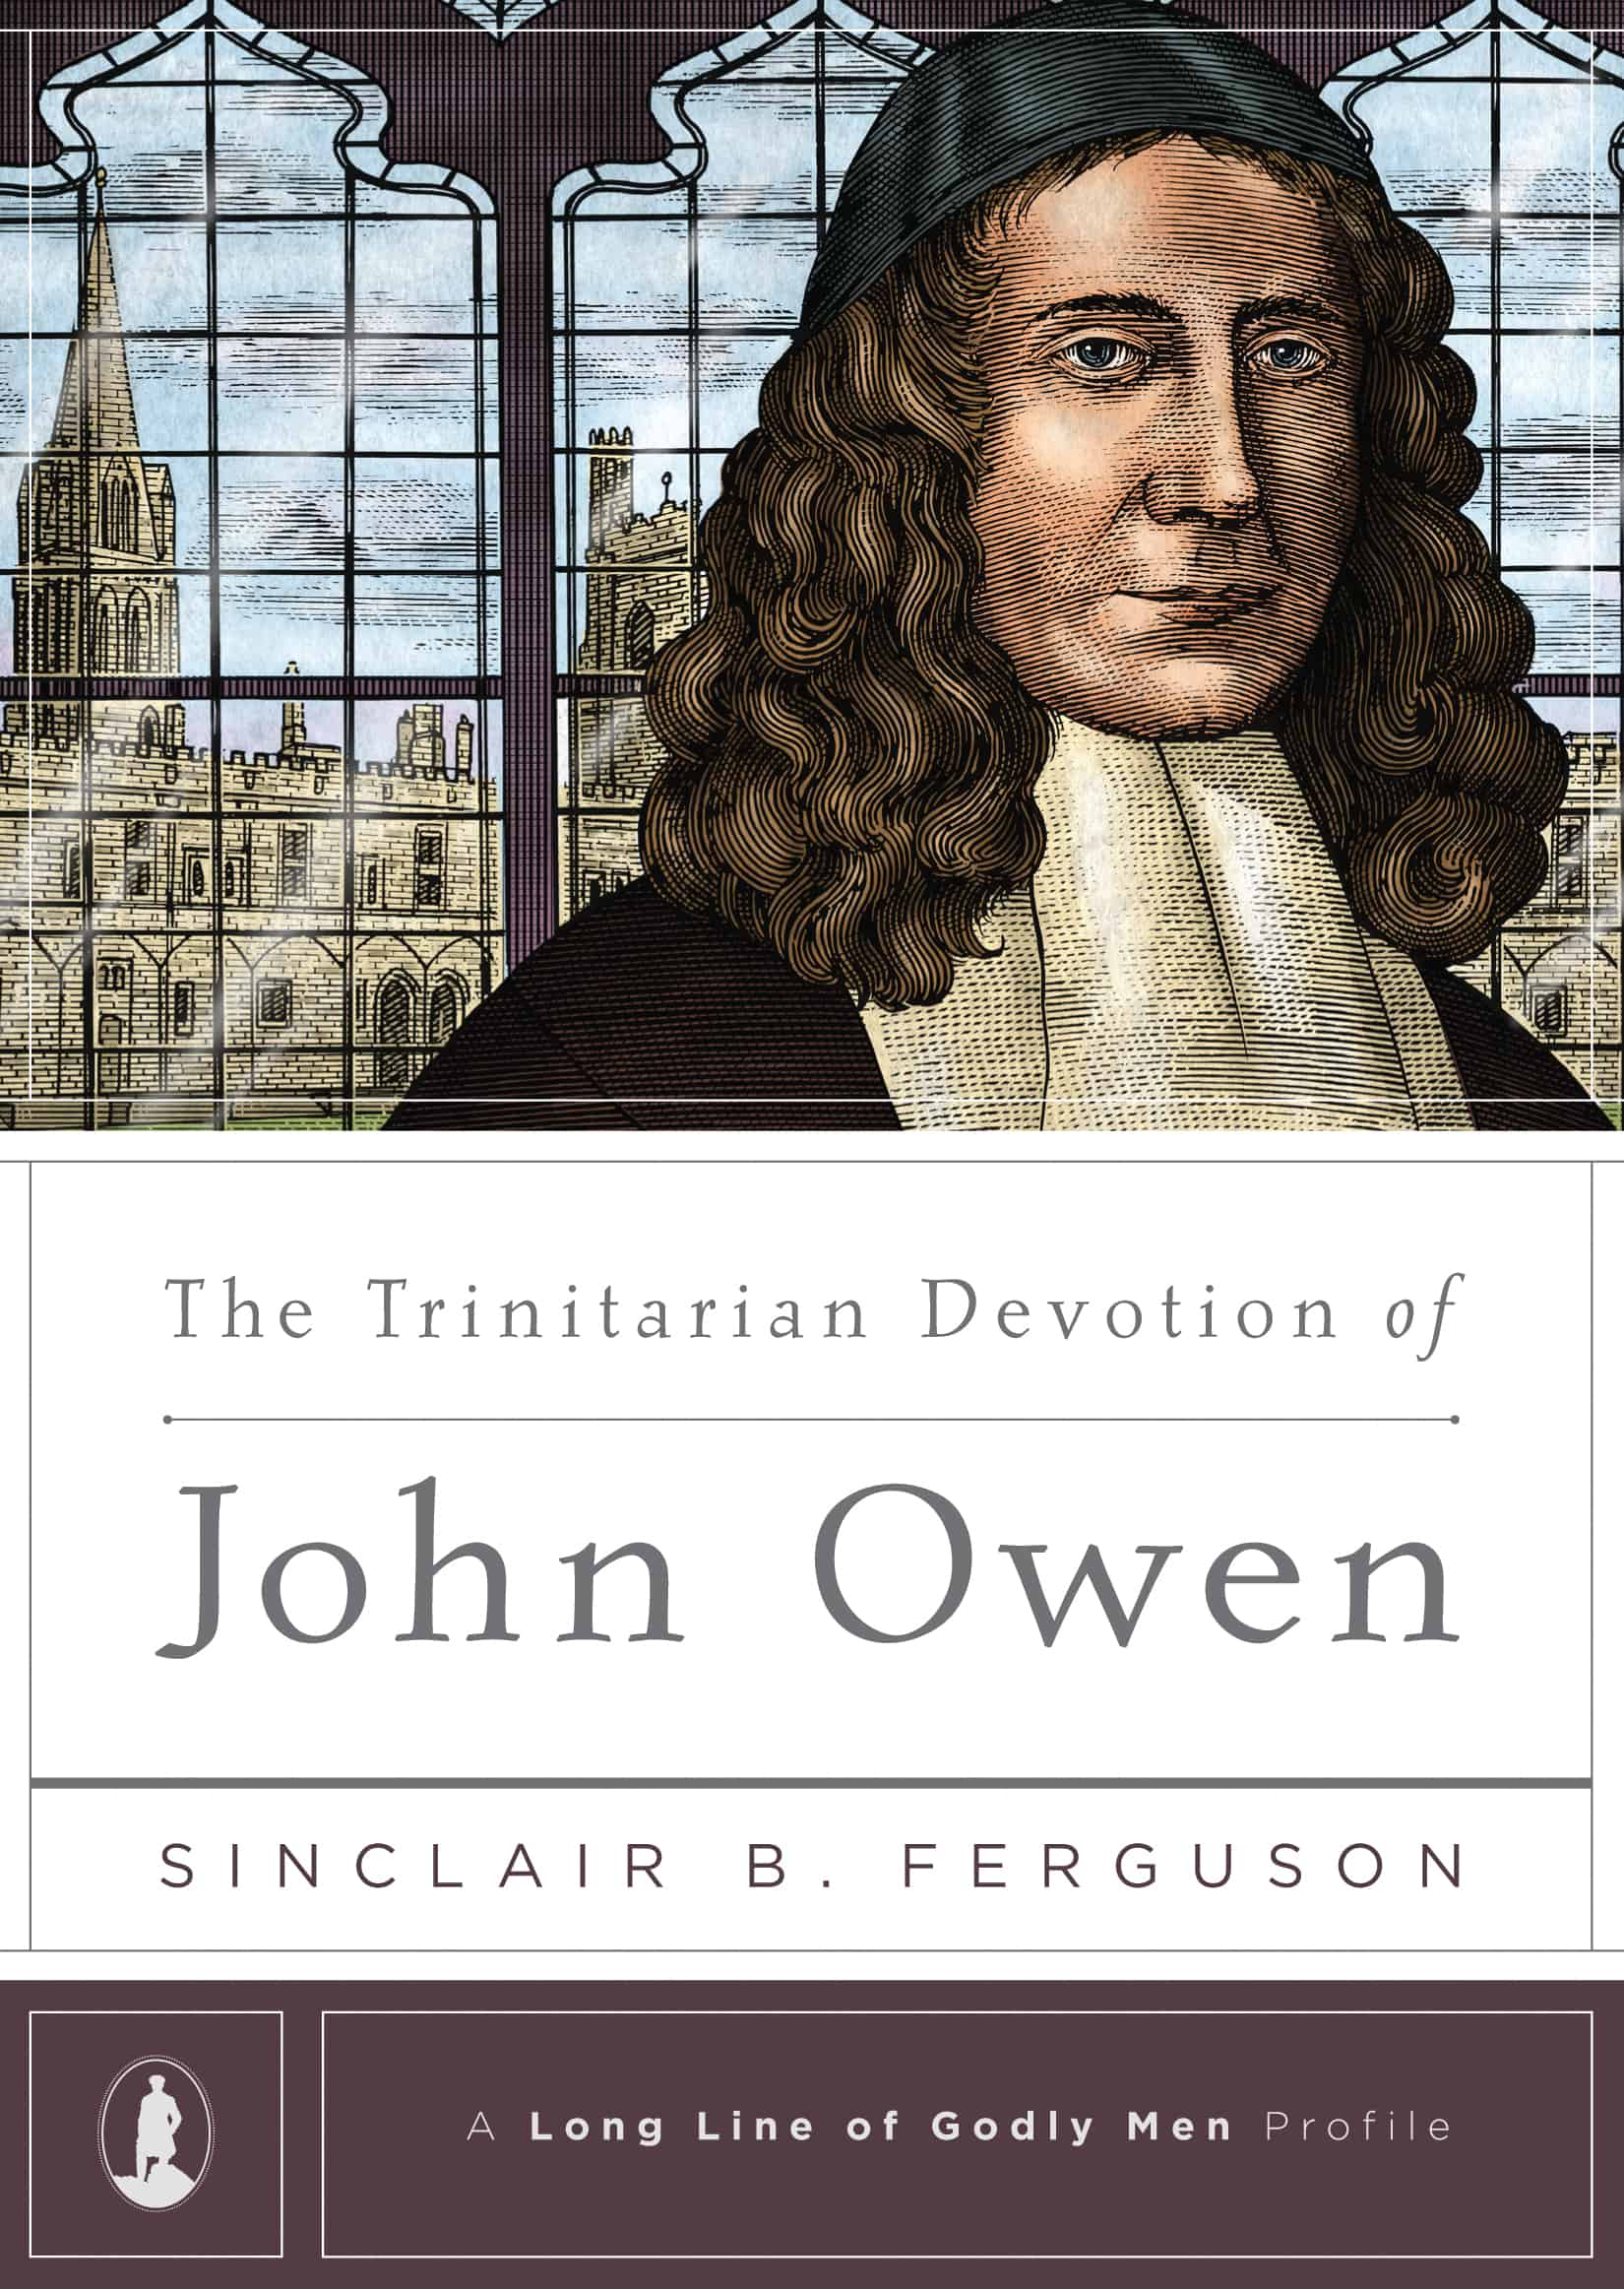 The Trinitarian Devotion of John Owen